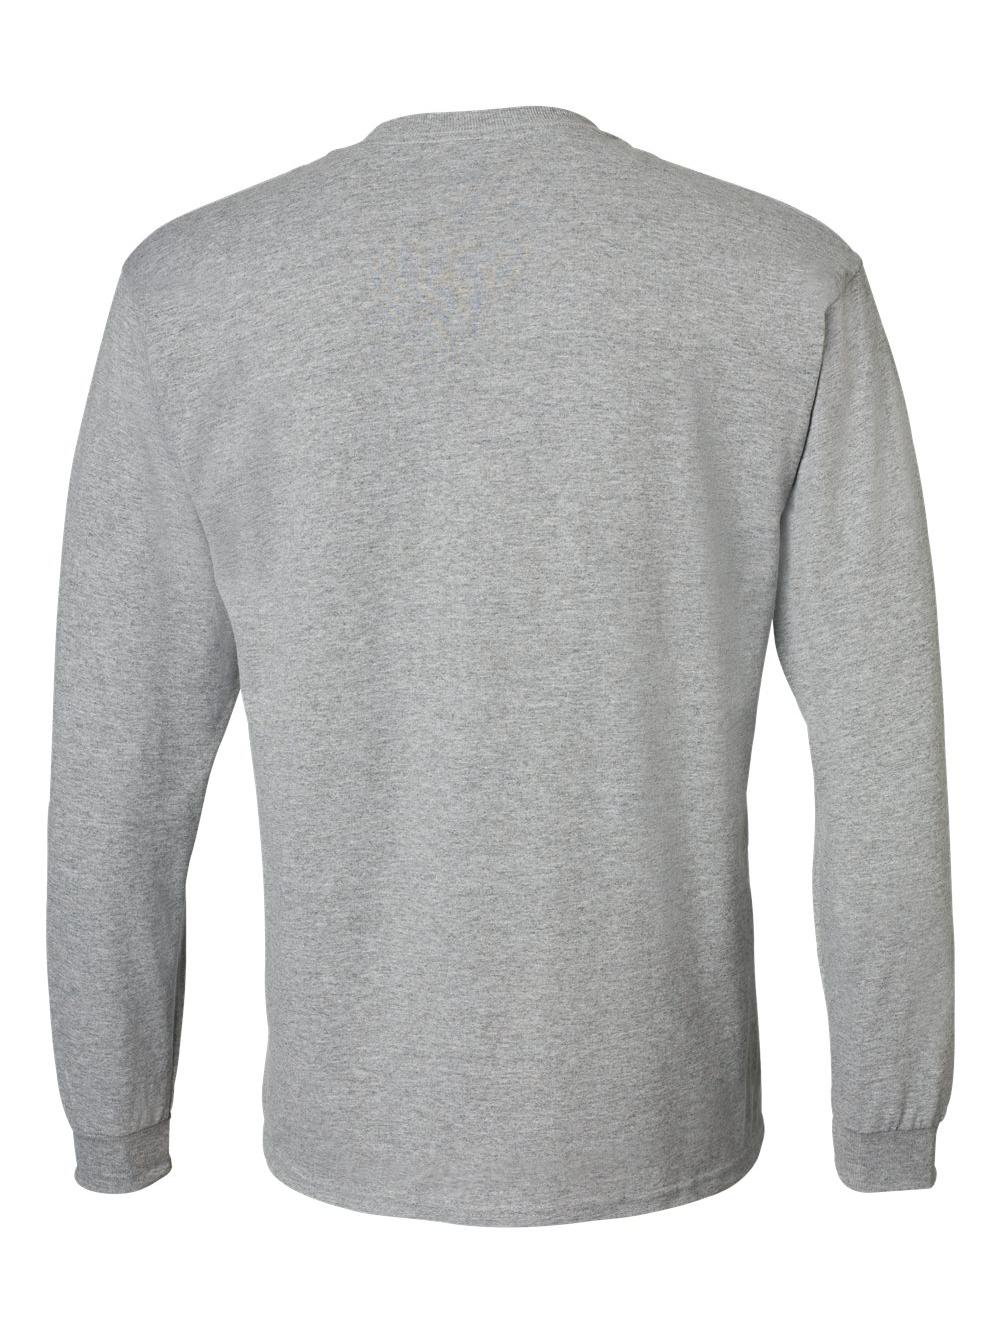 Gildan-DryBlend-50-50-Long-Sleeve-T-Shirt-8400 thumbnail 44